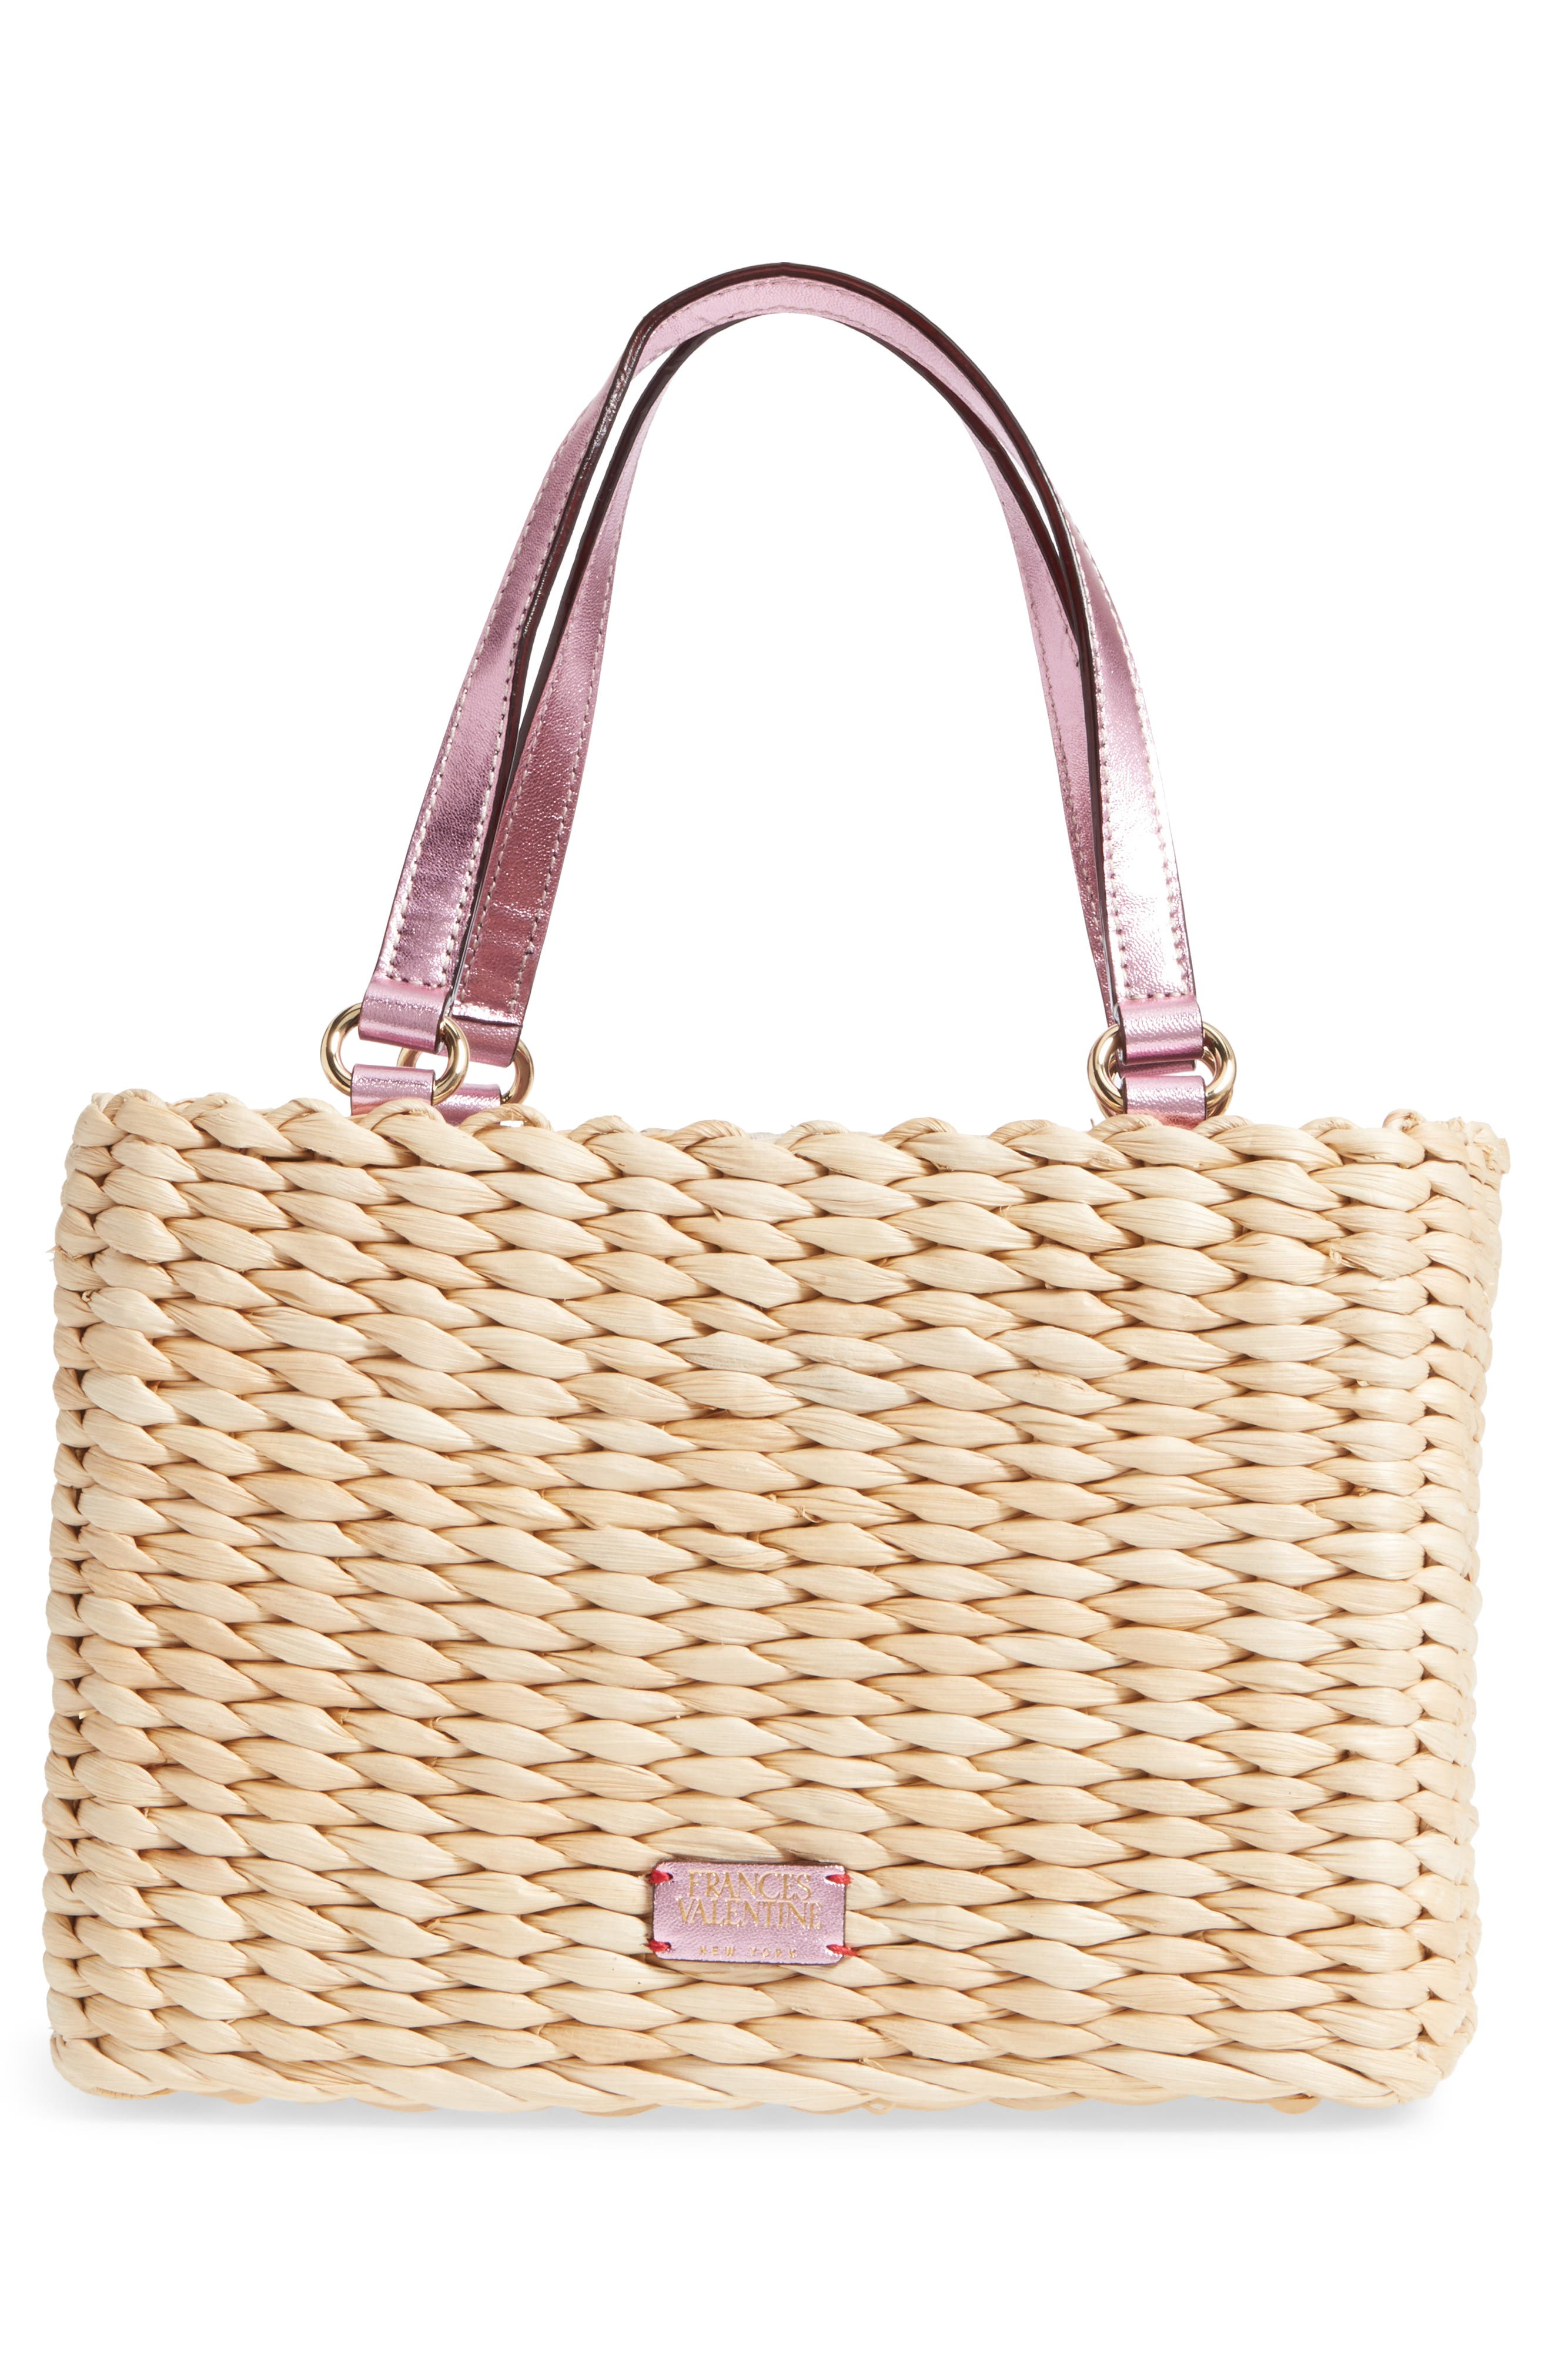 Alternate Image 3  - Frances Valentine Small Woven Straw Tote